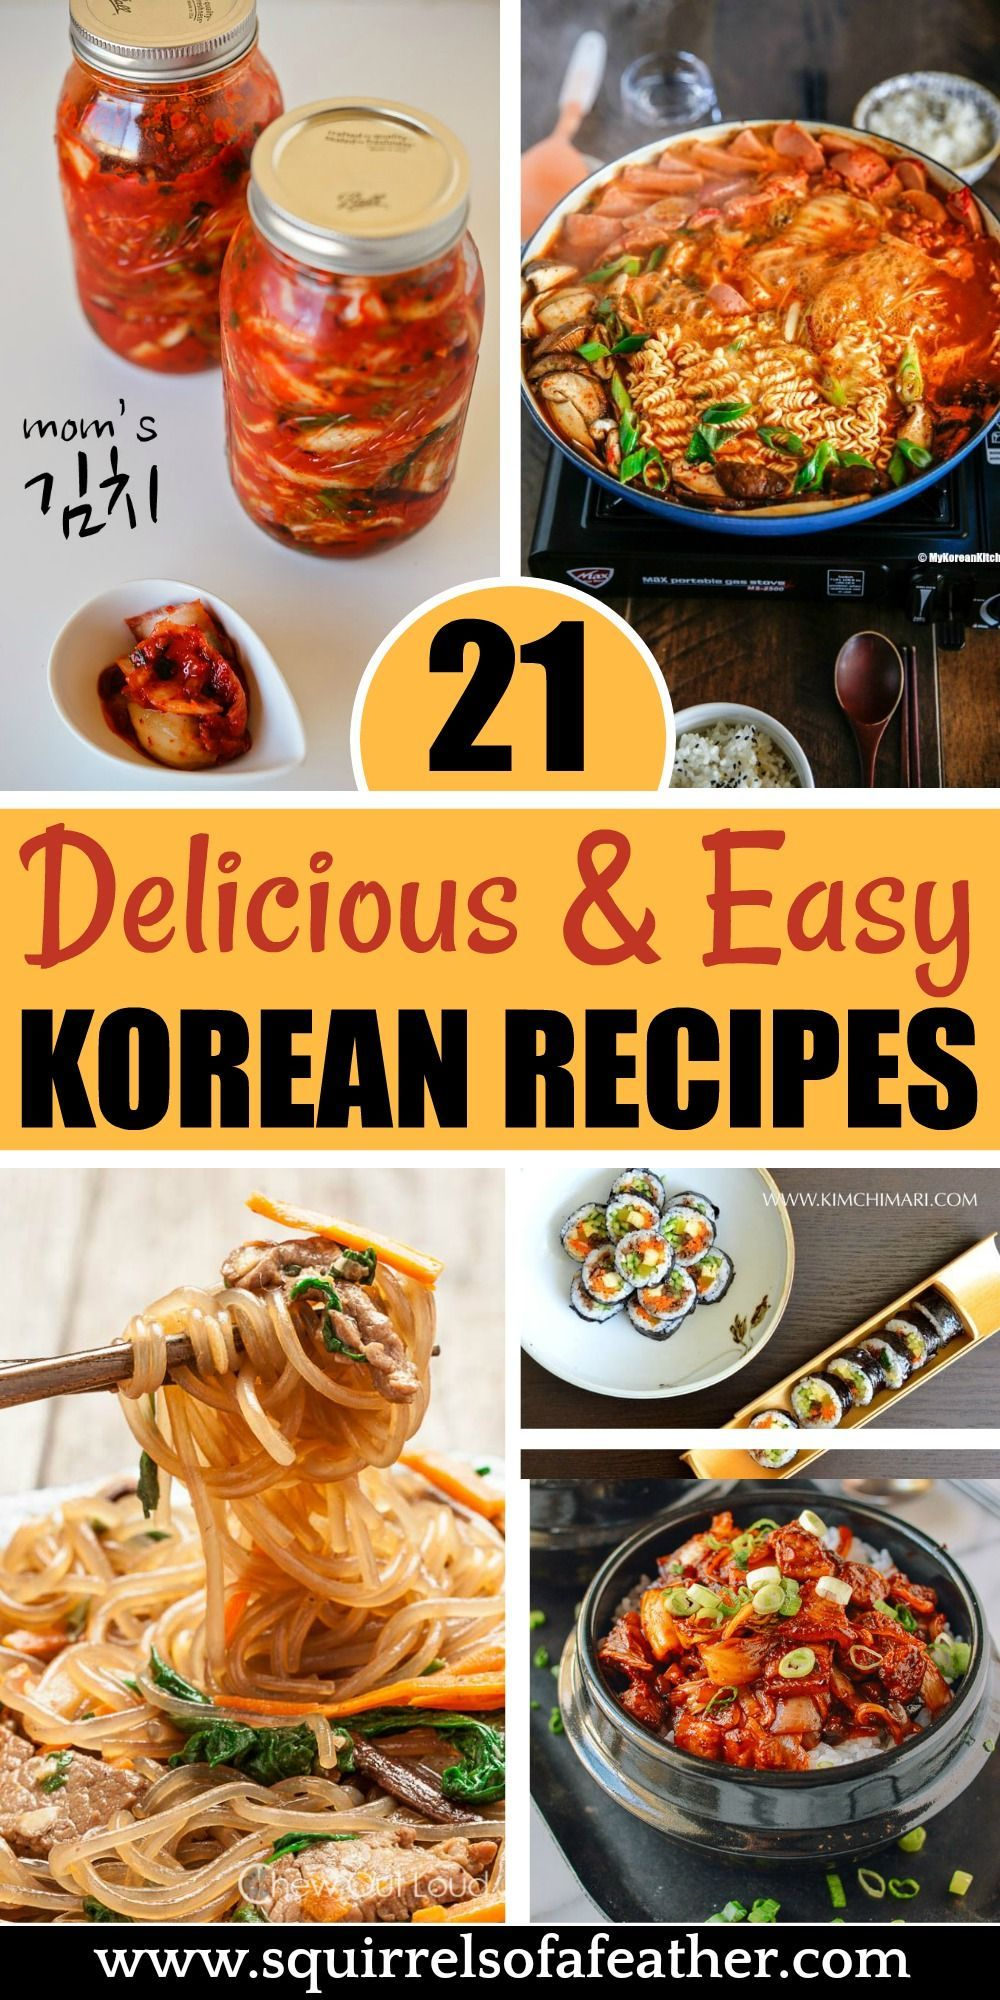 20 tasty korean recipes that anyone can make at home easy korean recipes korean side dishes asian recipes easy korean recipes korean side dishes